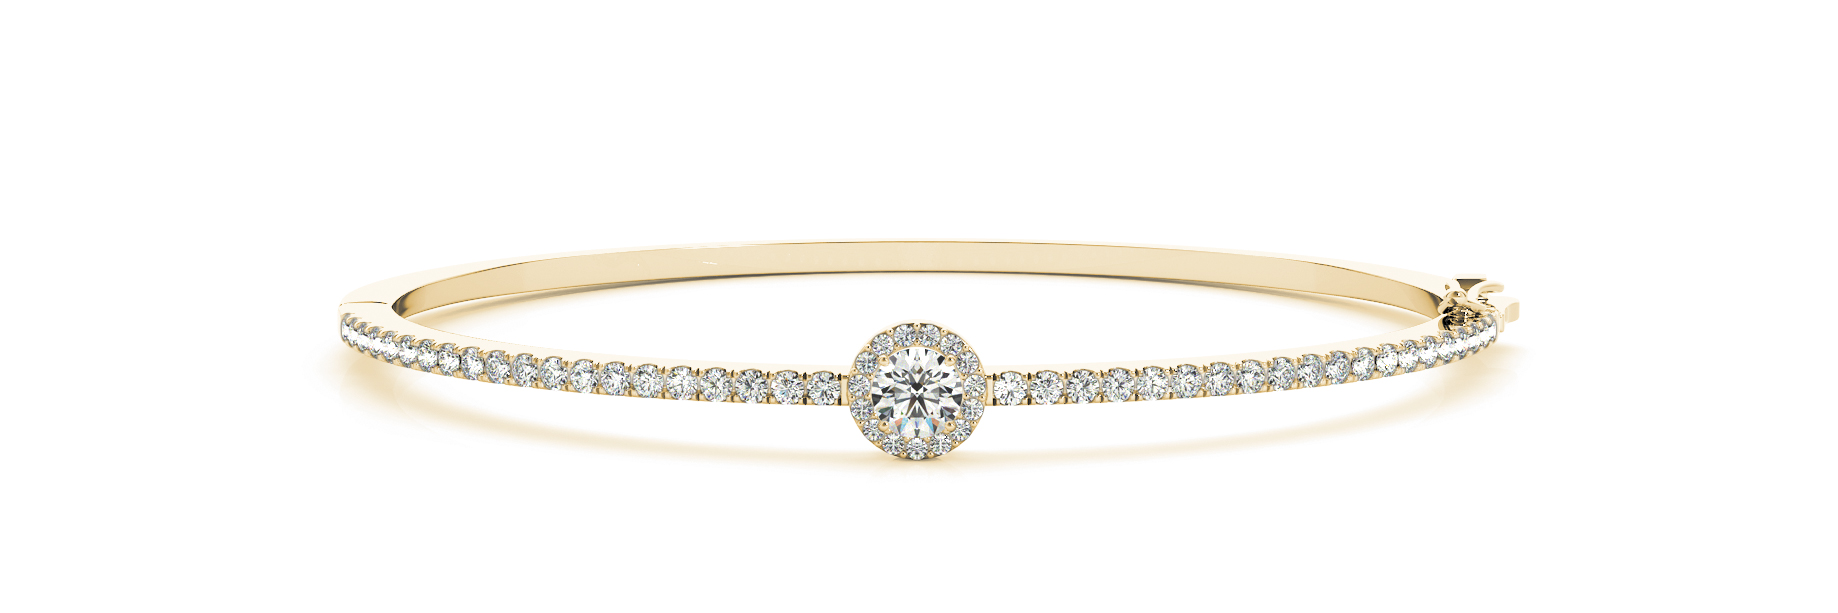 Round Diamond Center Stone Halo Yellow Gold Bangle